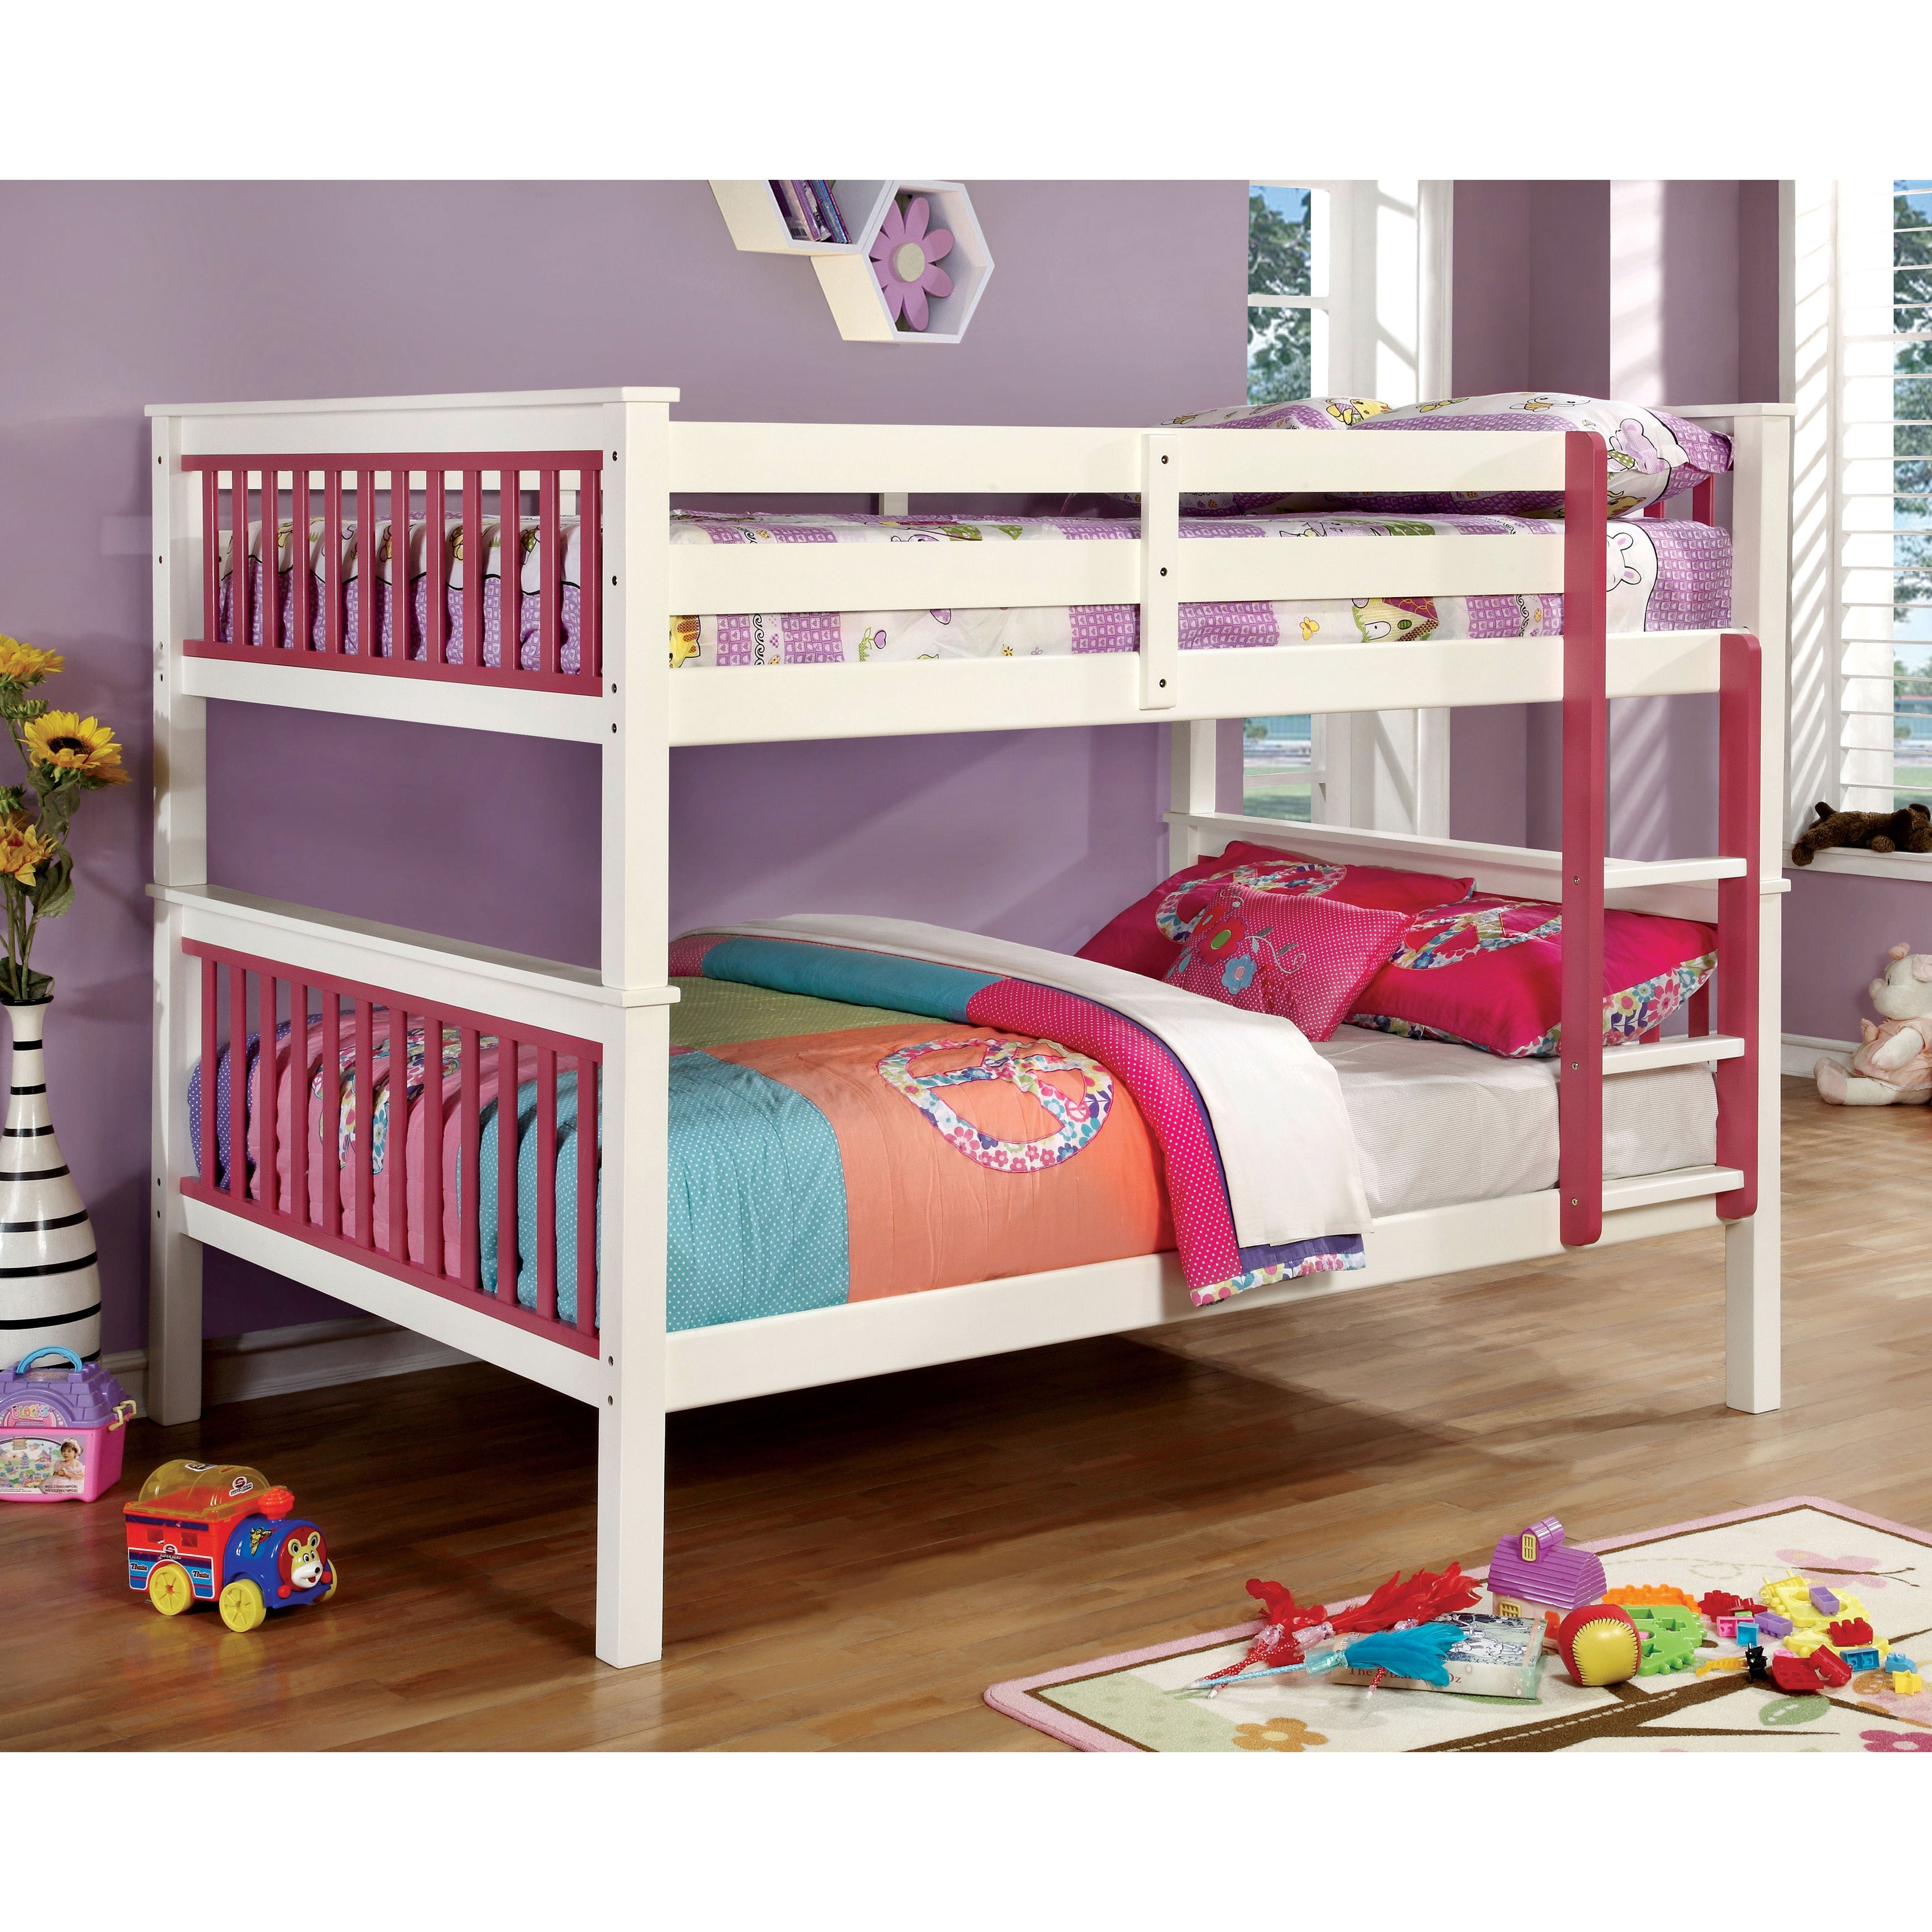 Furniture of America Piers II Two-tone Pink/White Bunk Be...